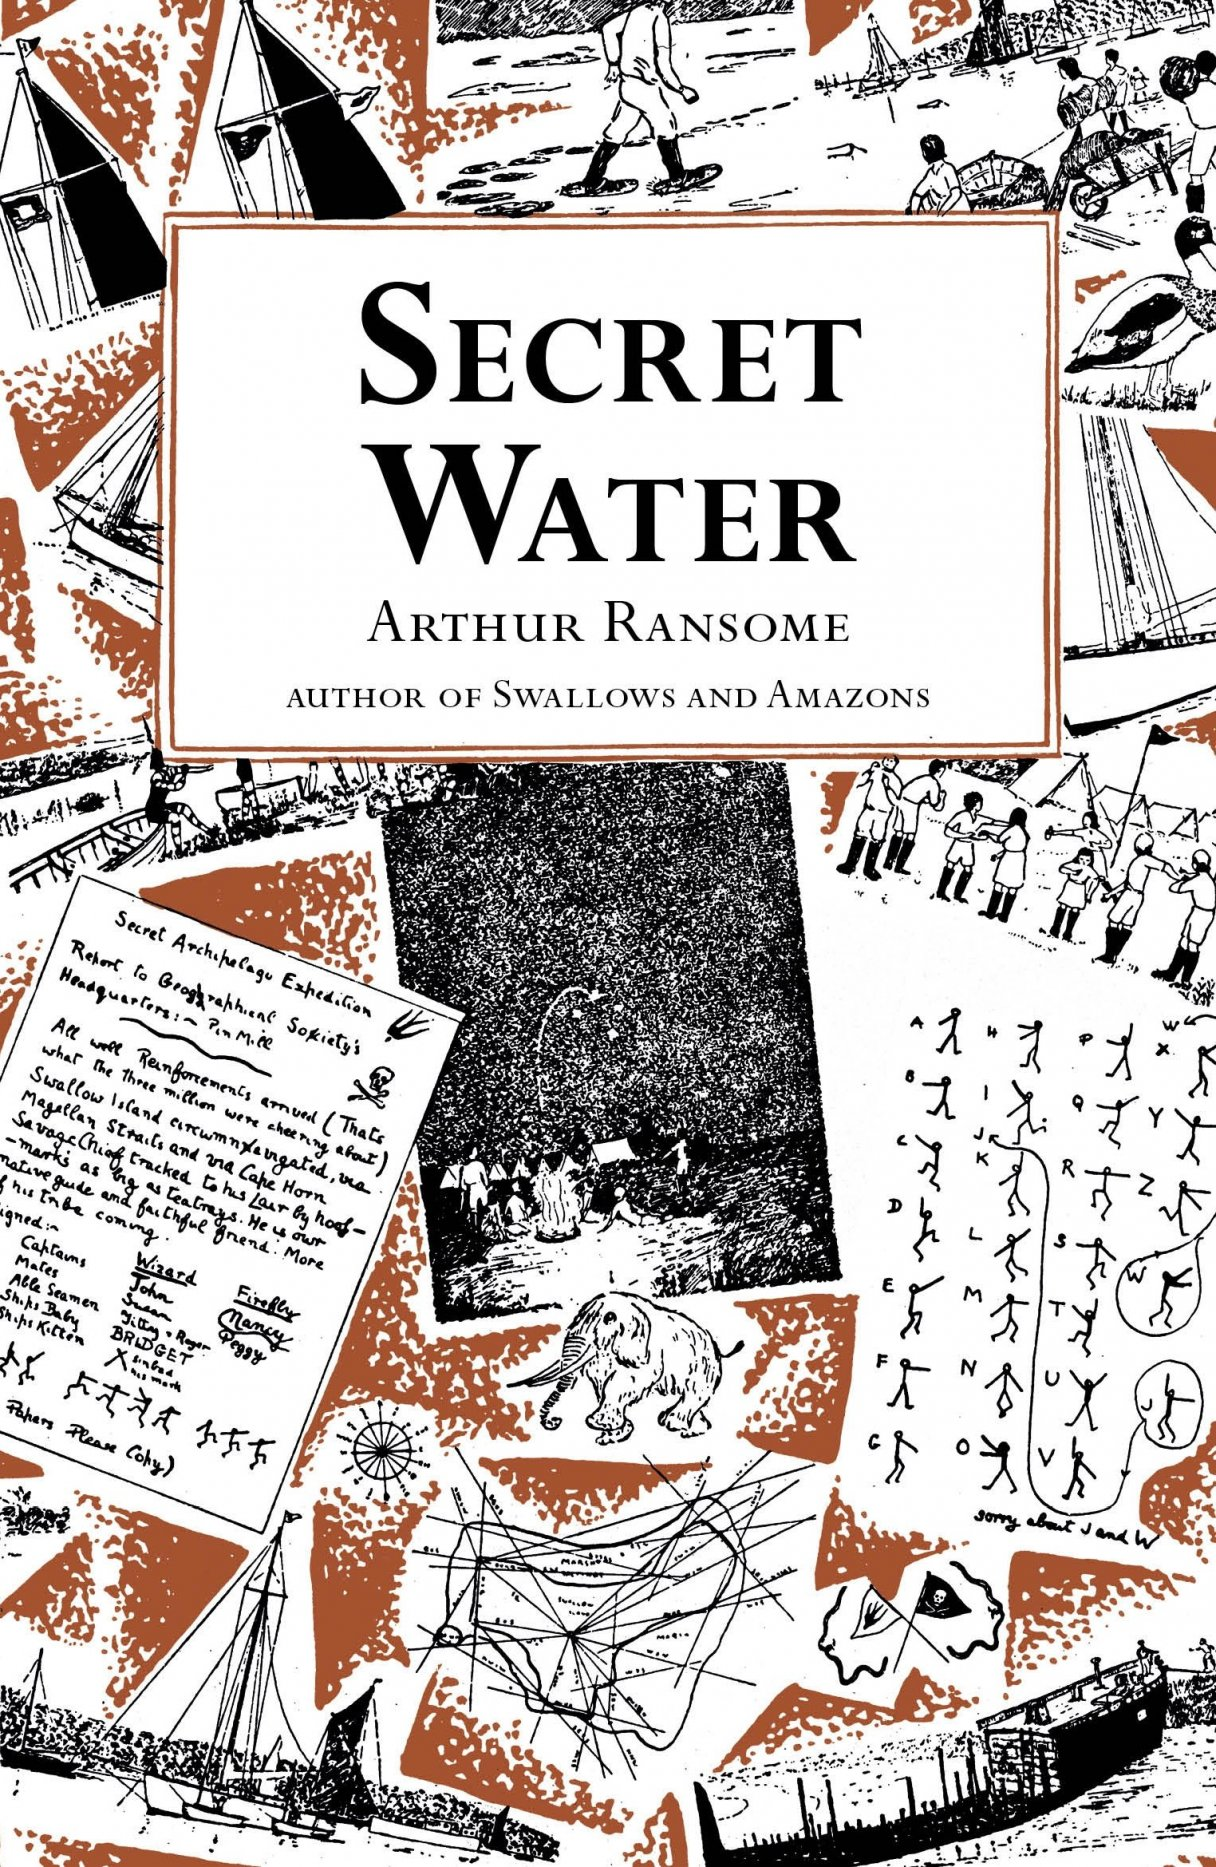 Secret Water - RANSOME, A.